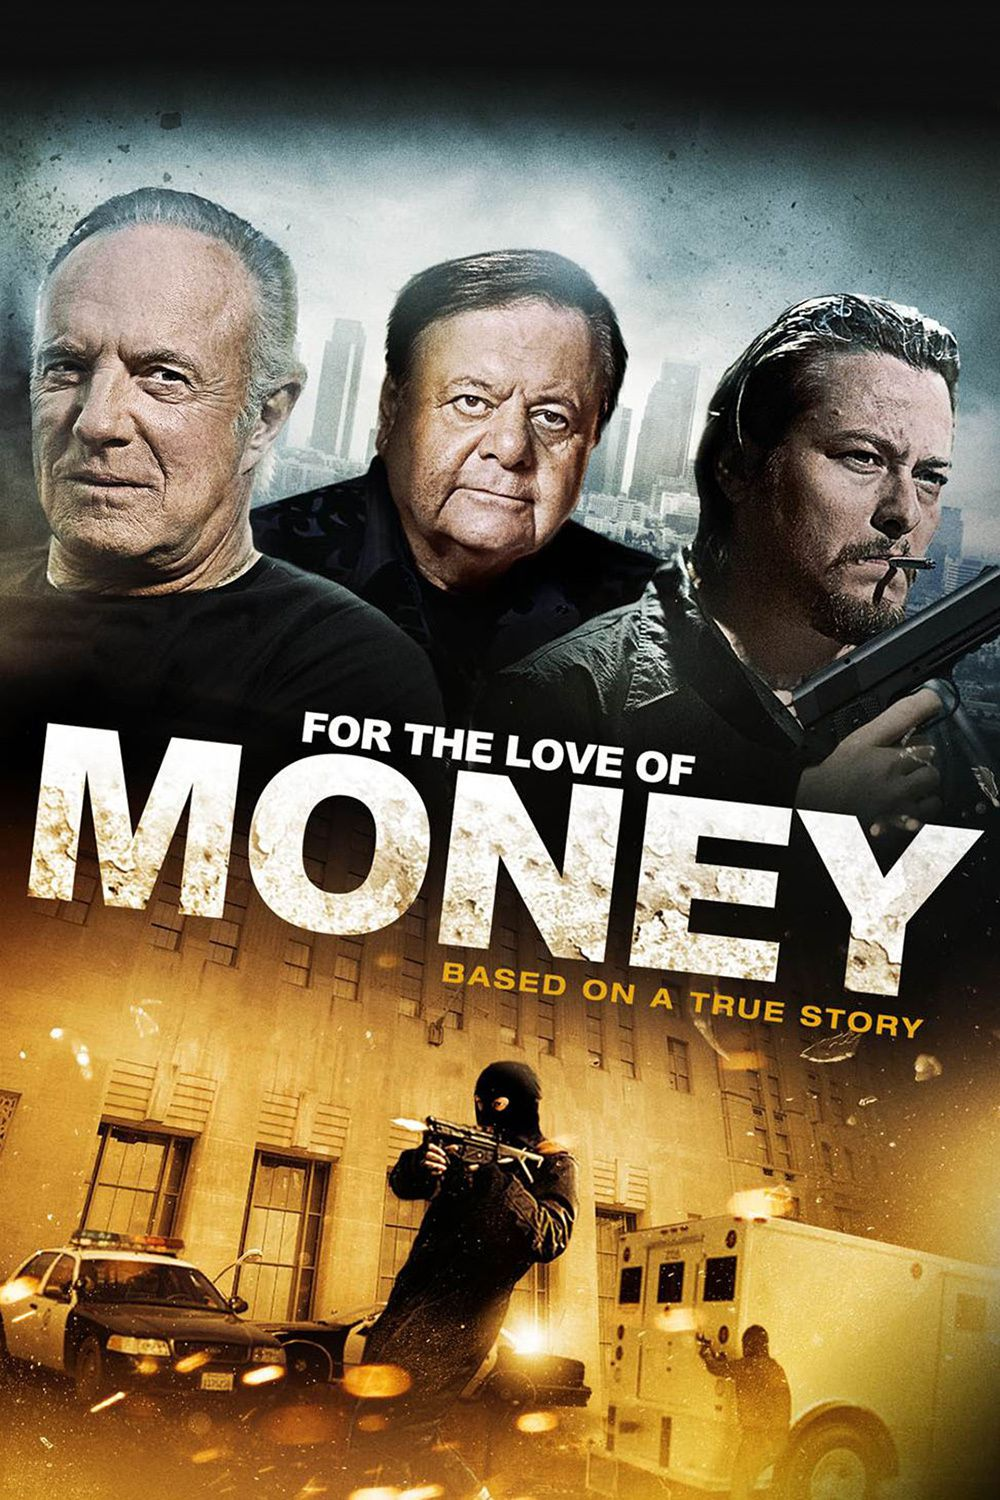 For the Love of Money - Film (2012) streaming VF gratuit complet